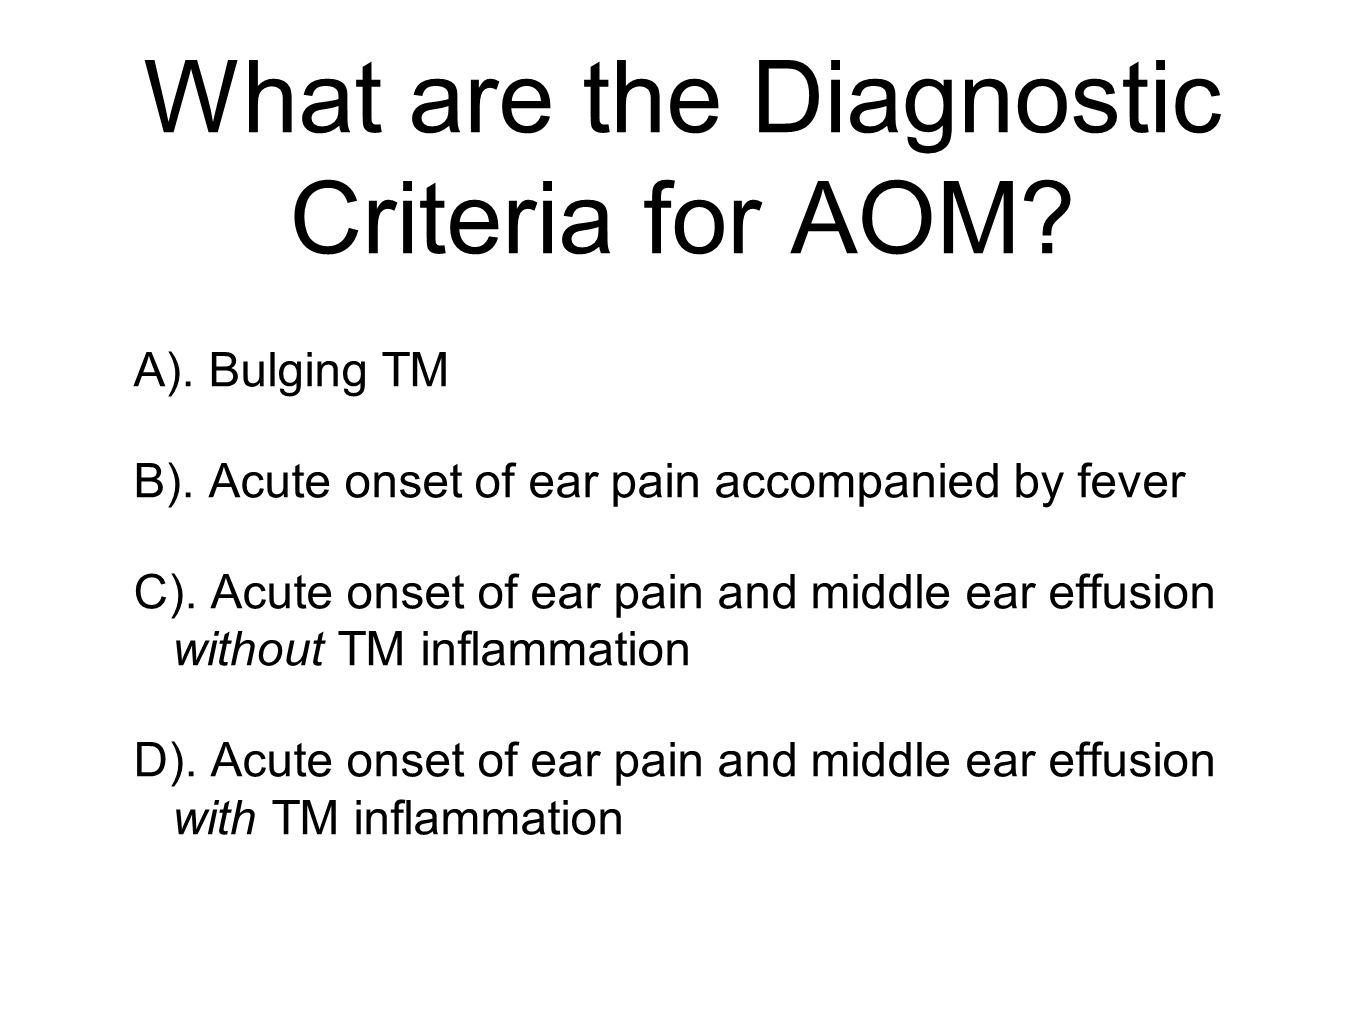 What are the Diagnostic Criteria for AOM